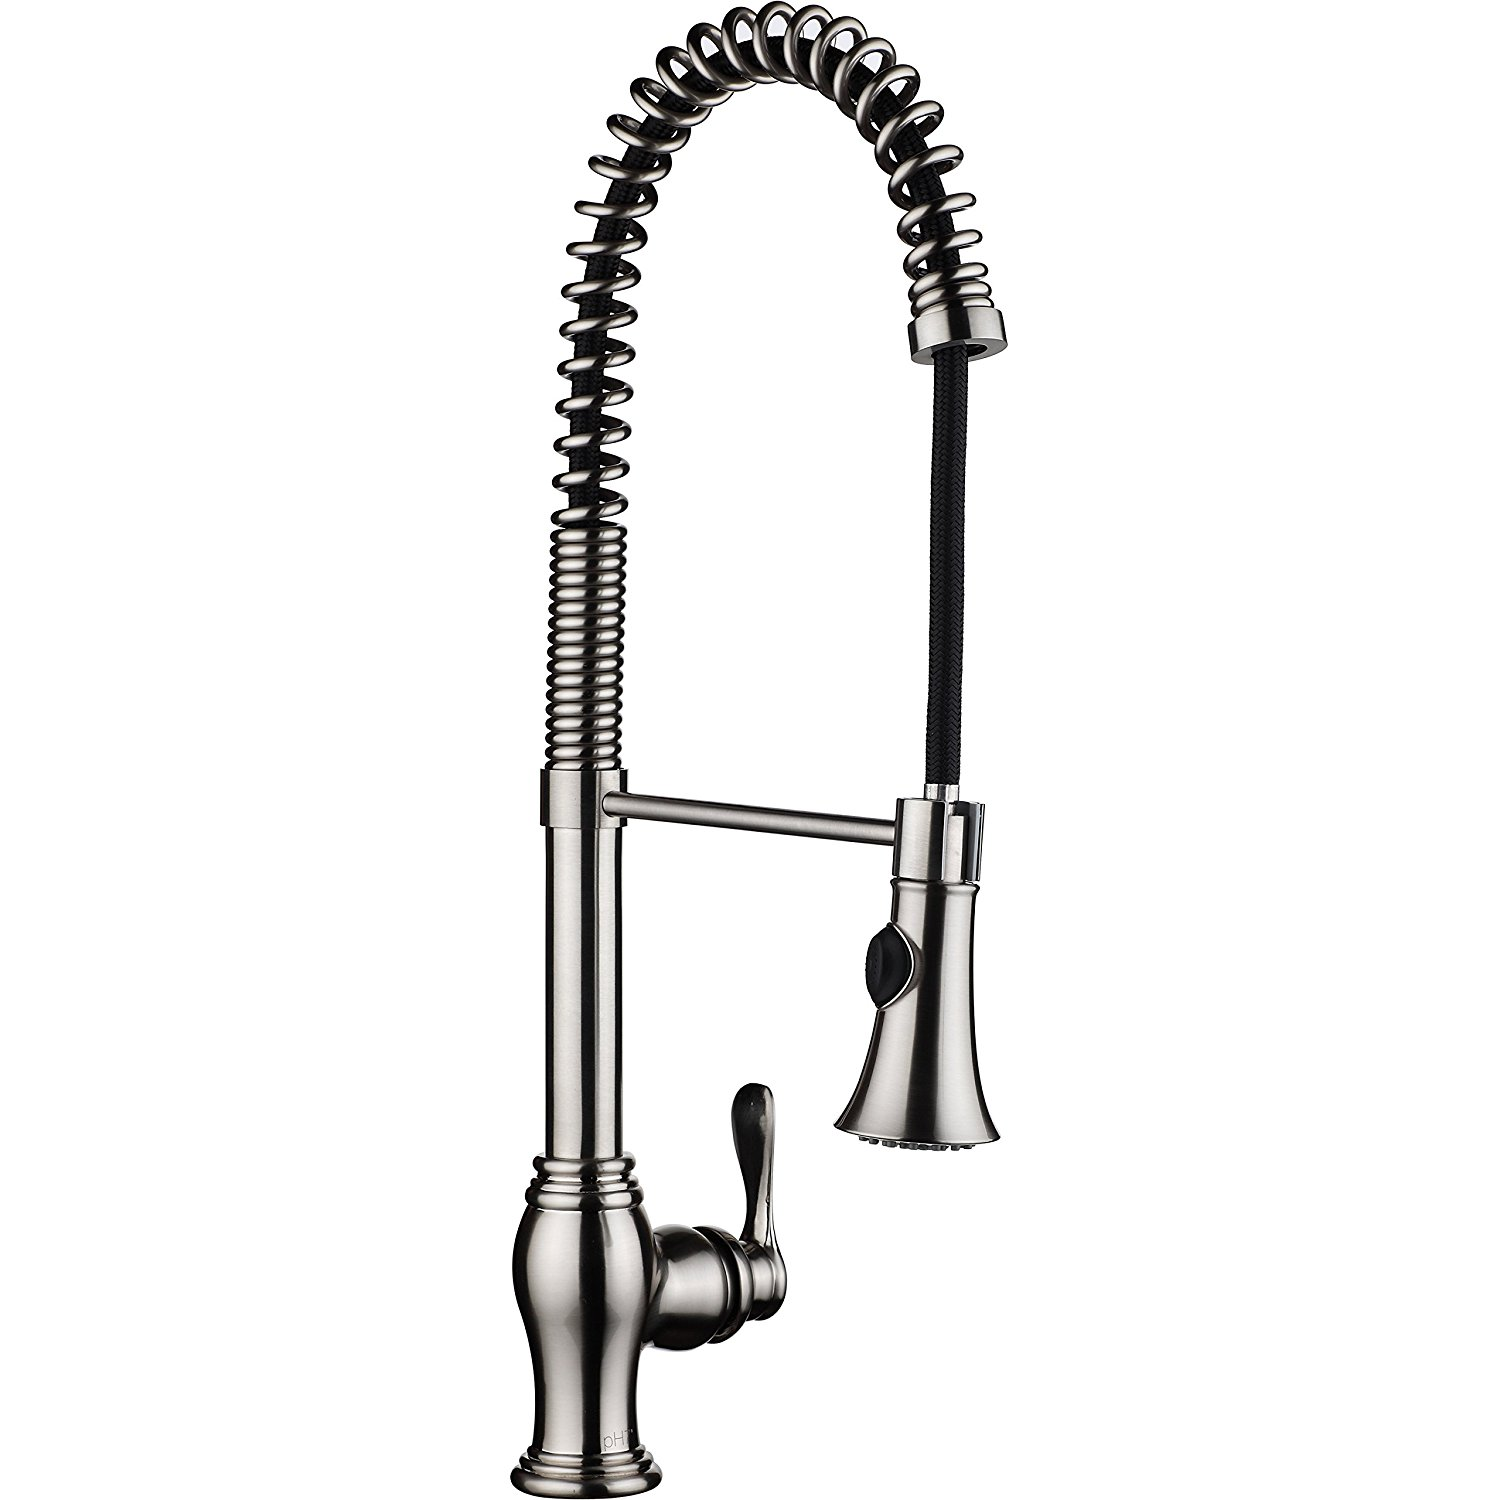 furnitures motes of kienandsweet faucet new down kitchen the with pull hole inside image single